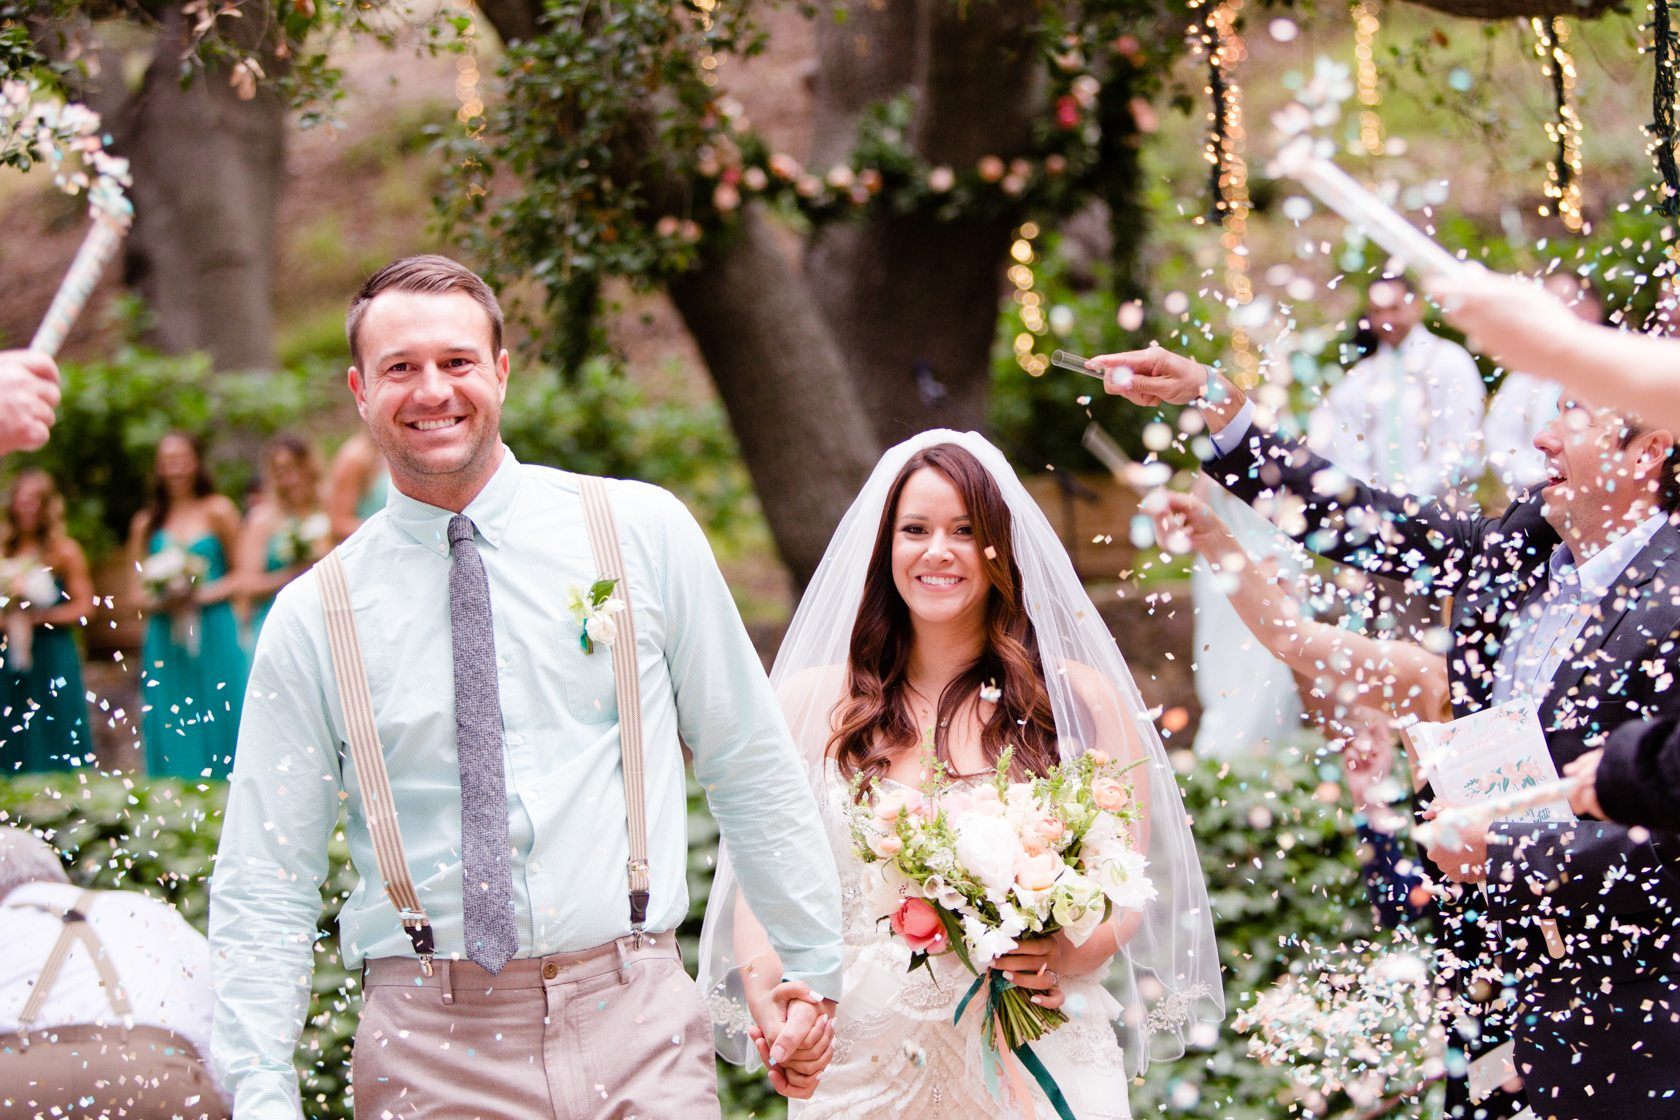 The_Printed_Palette_Wedding_at_Calamigos_Ranch_0010.jpg